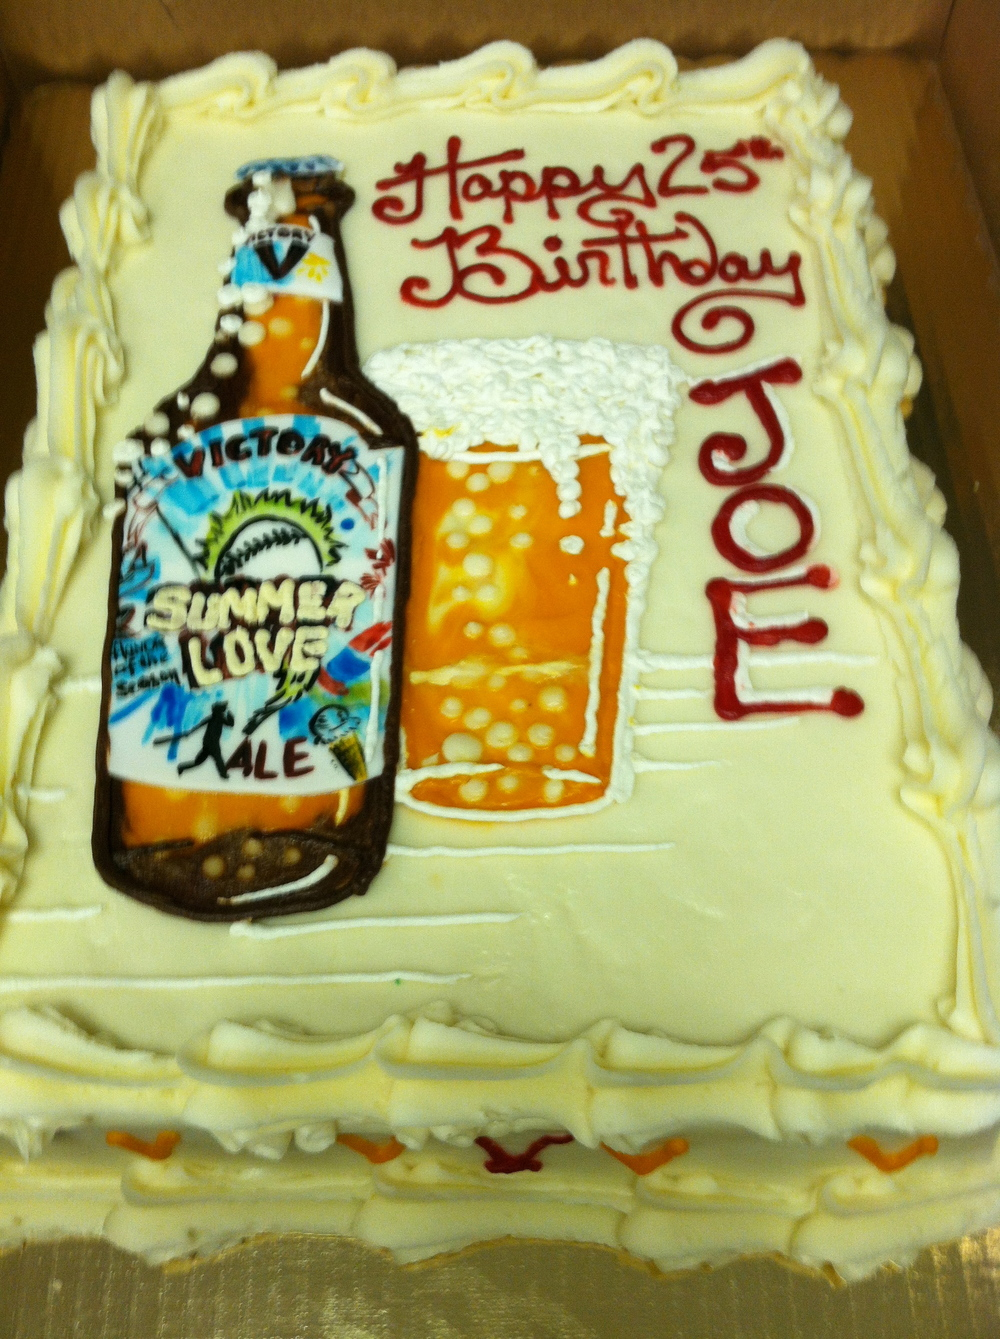 Victory Beer Birthday Cake